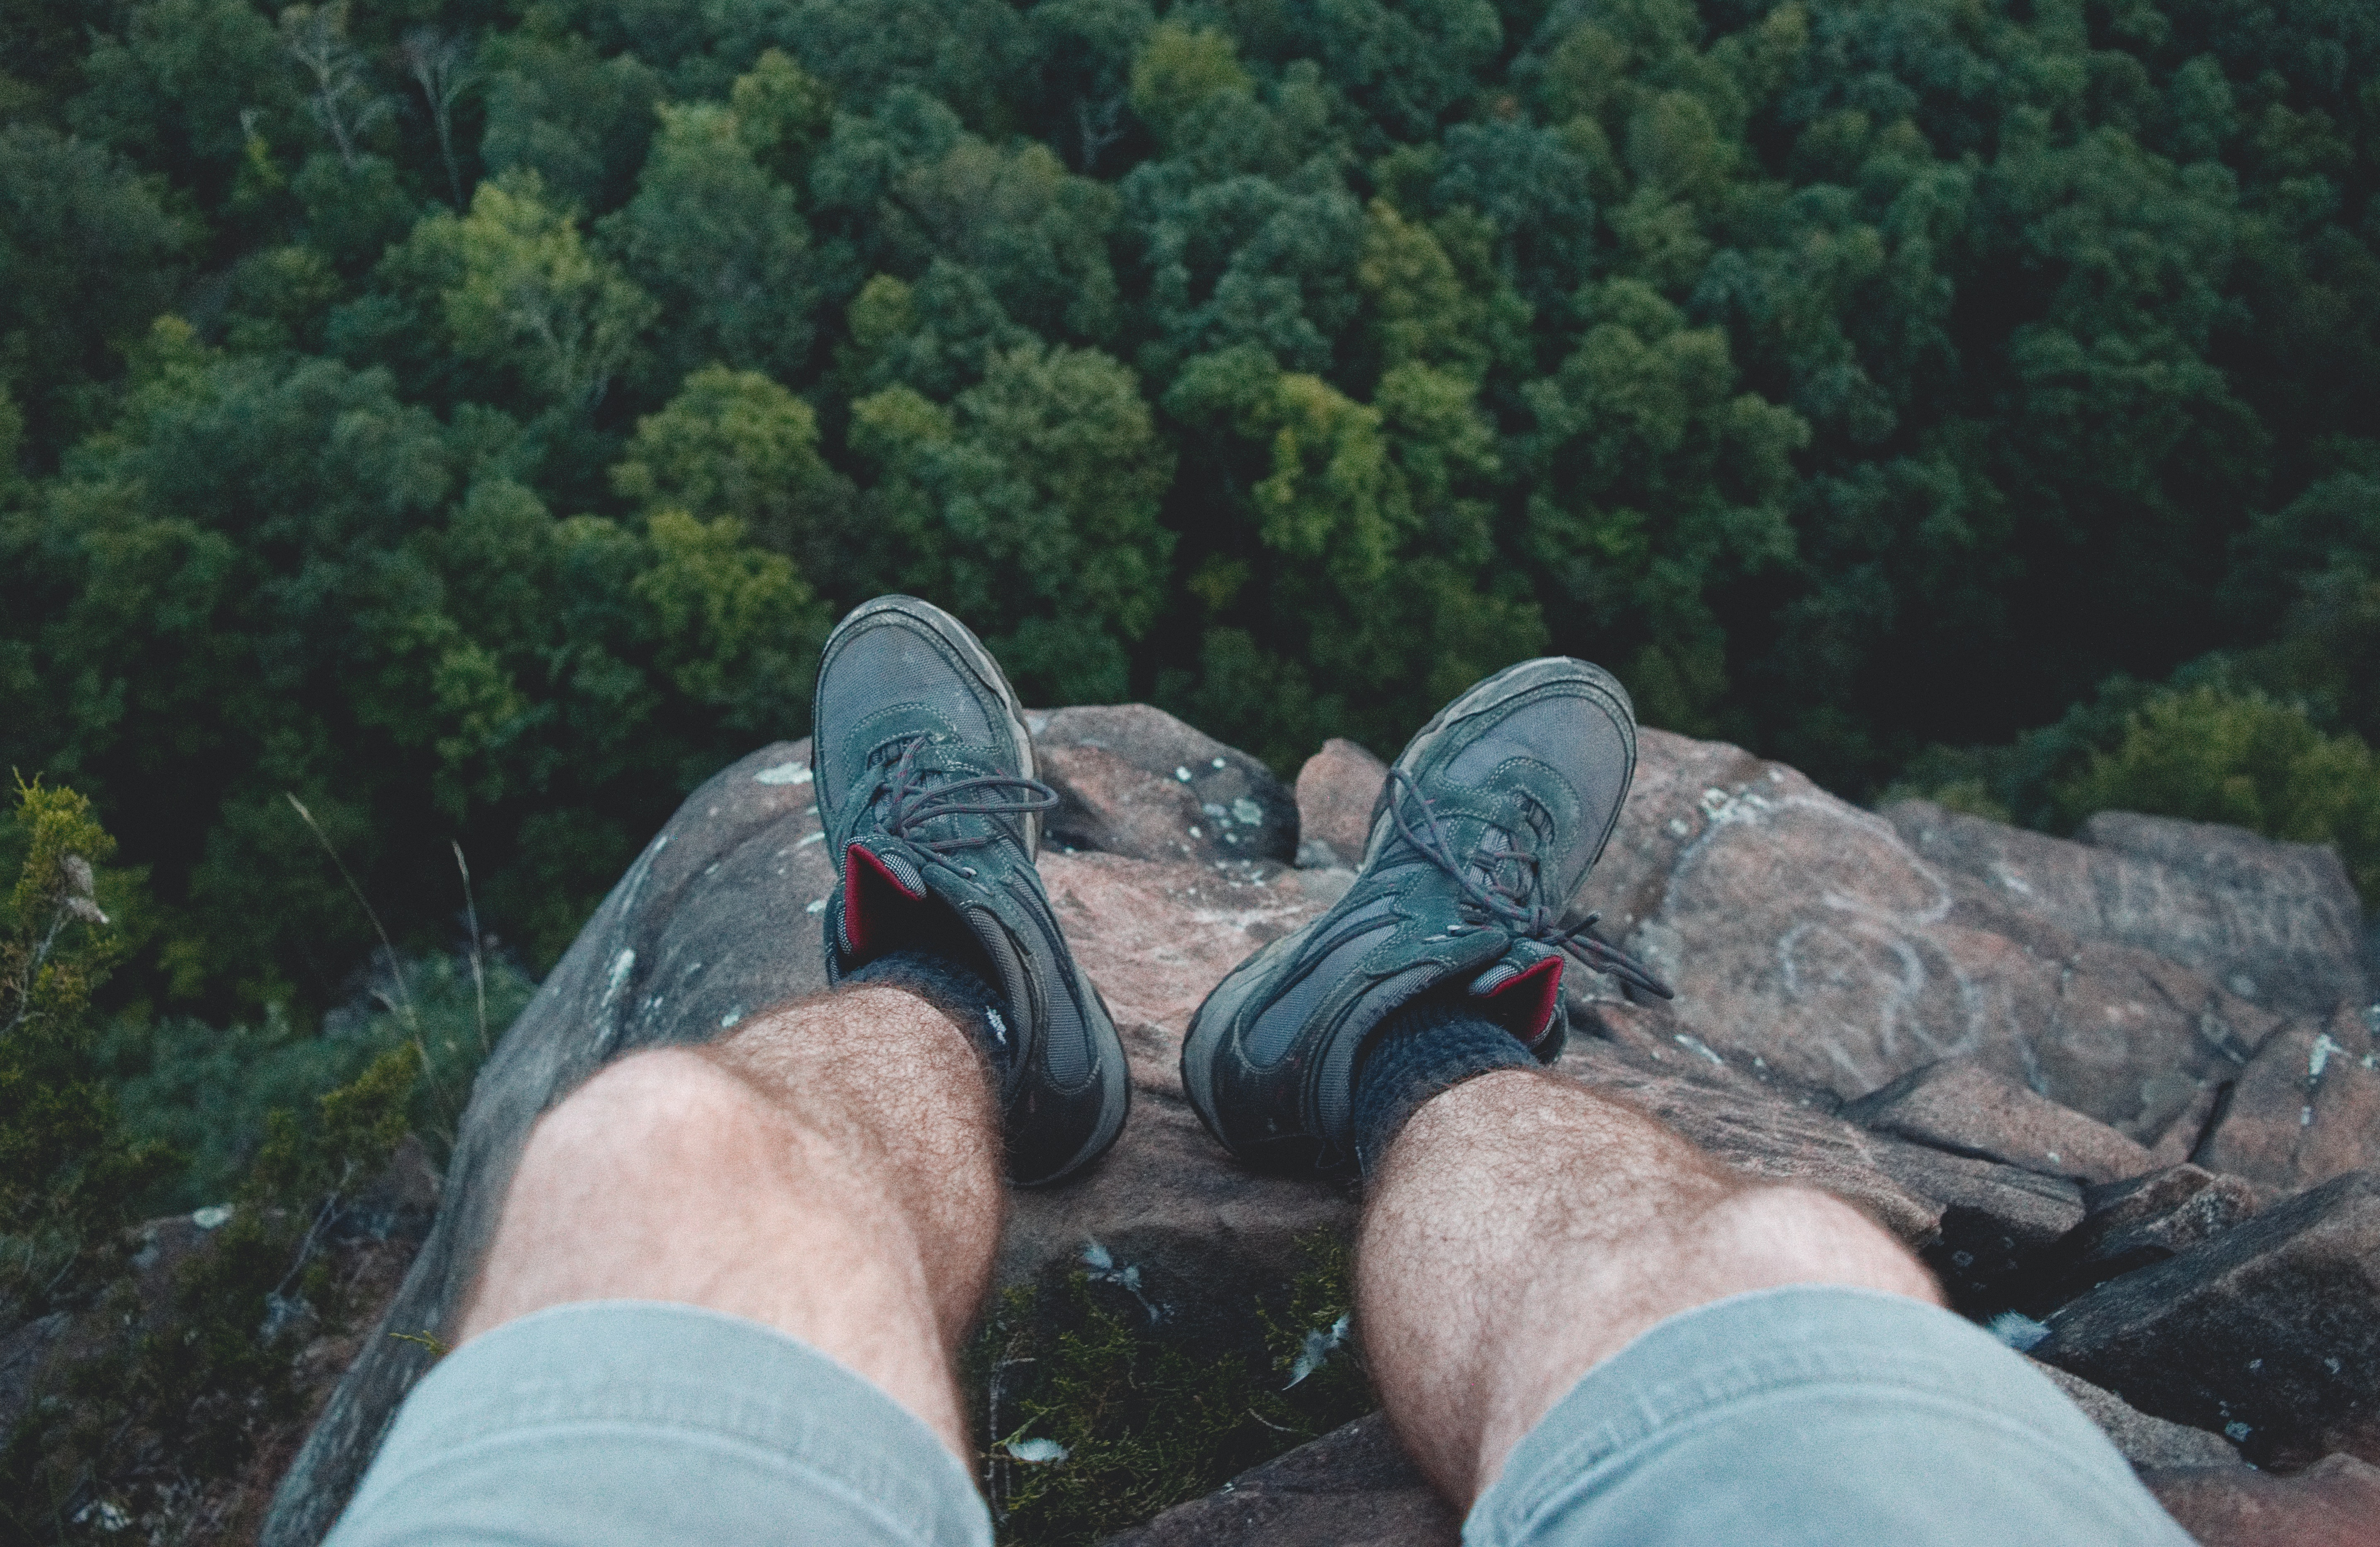 Man Standing on Edge of Mountain, Cliff, Outdoors, View, Trees, HQ Photo